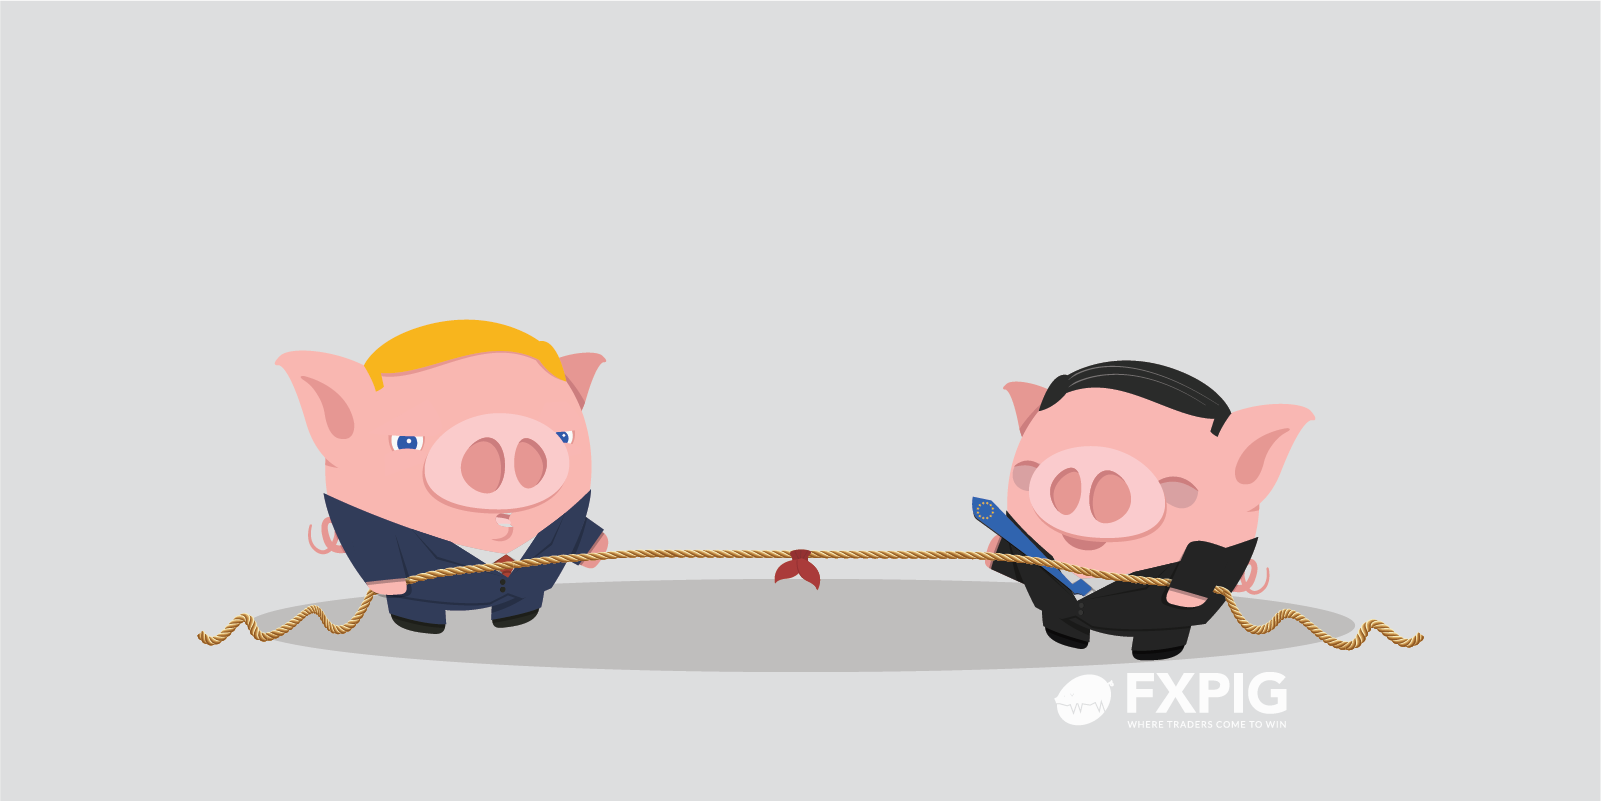 tug-of-war_trump_market-reopening_Forex_FXPIG